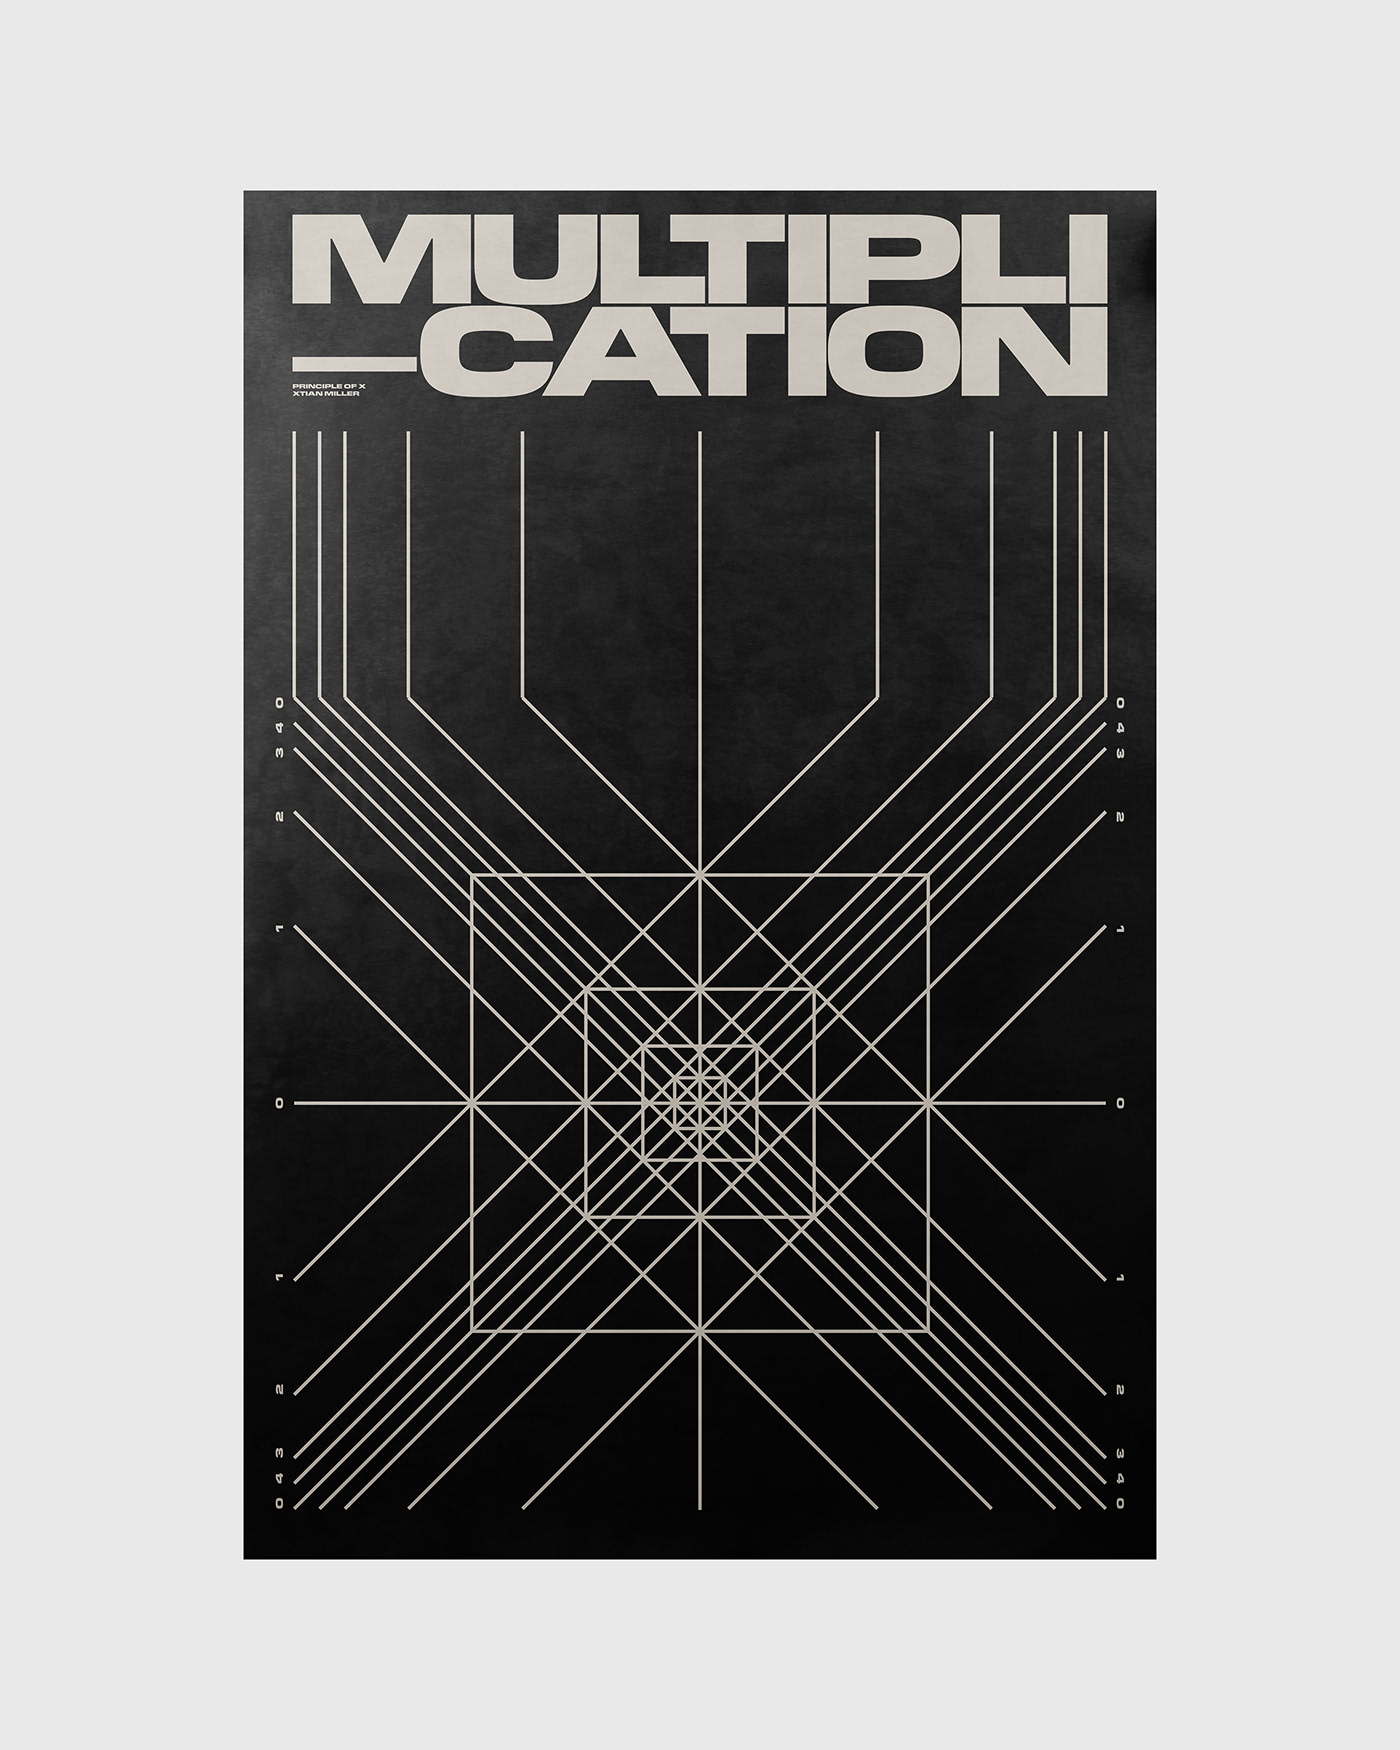 Multiplication poster by Xtian Miller